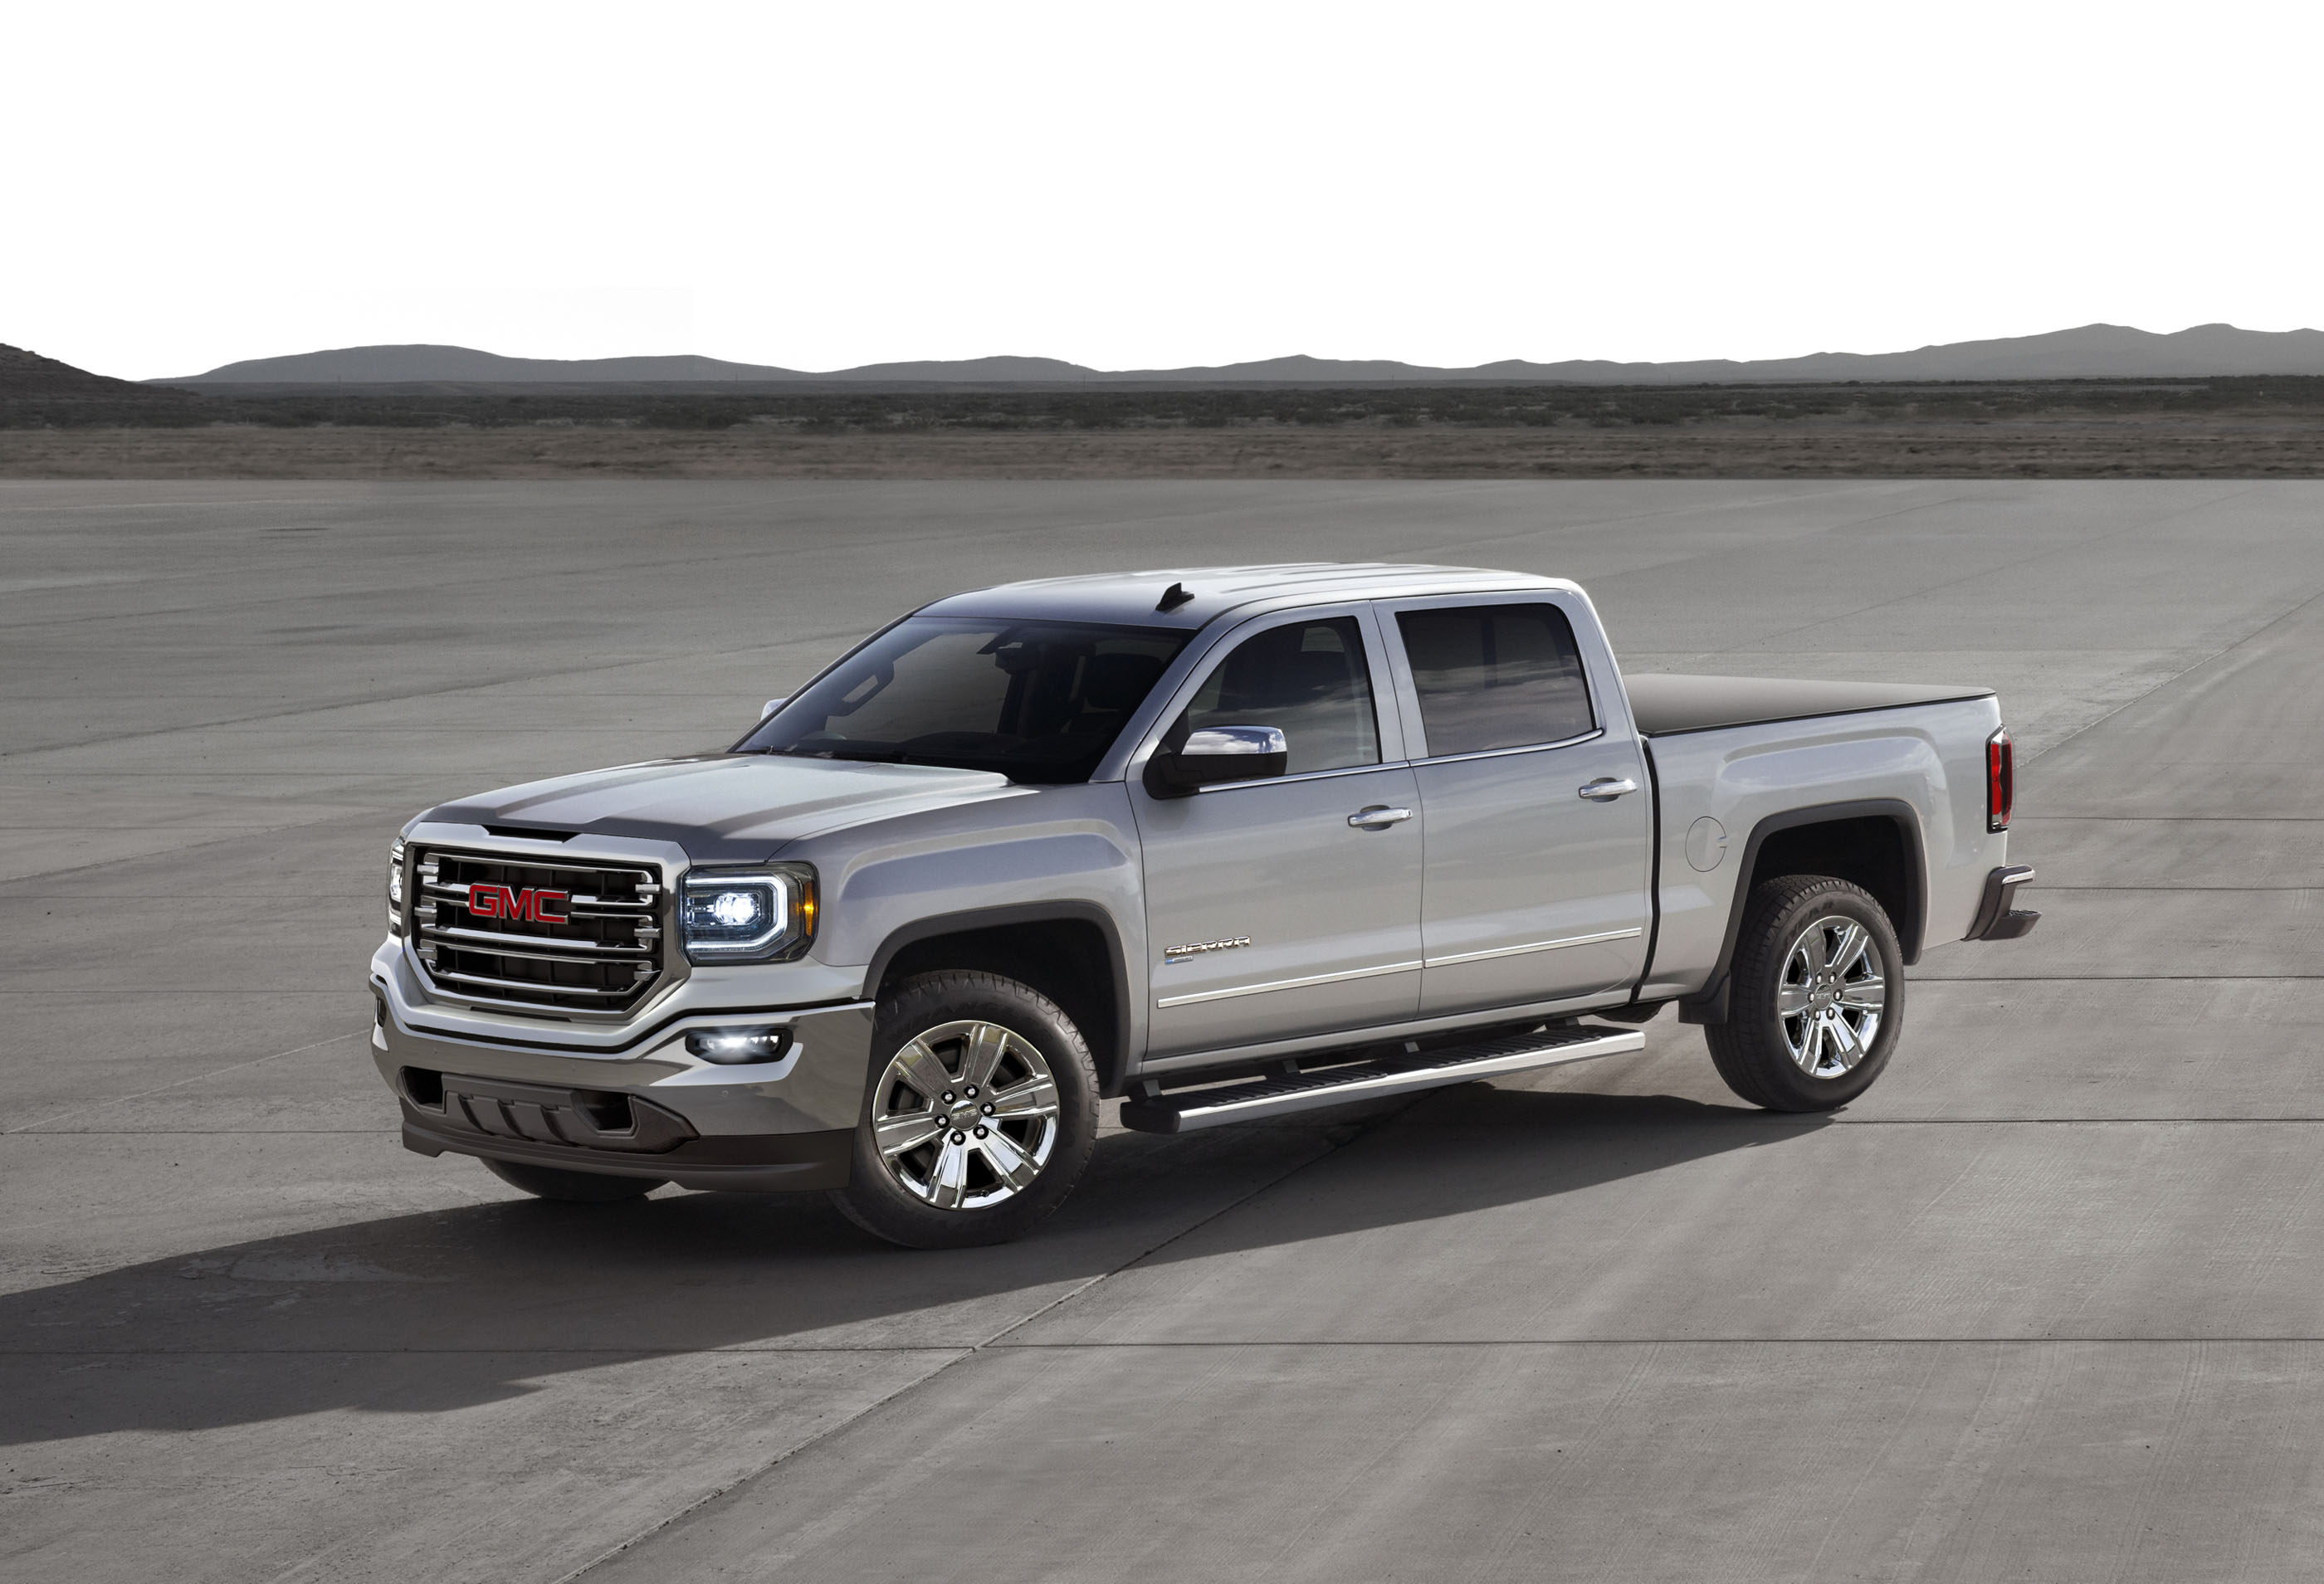 Mercedes Kansas City >> New and Used GMC Sierra 1500: Prices, Photos, Reviews, Specs - The Car Connection